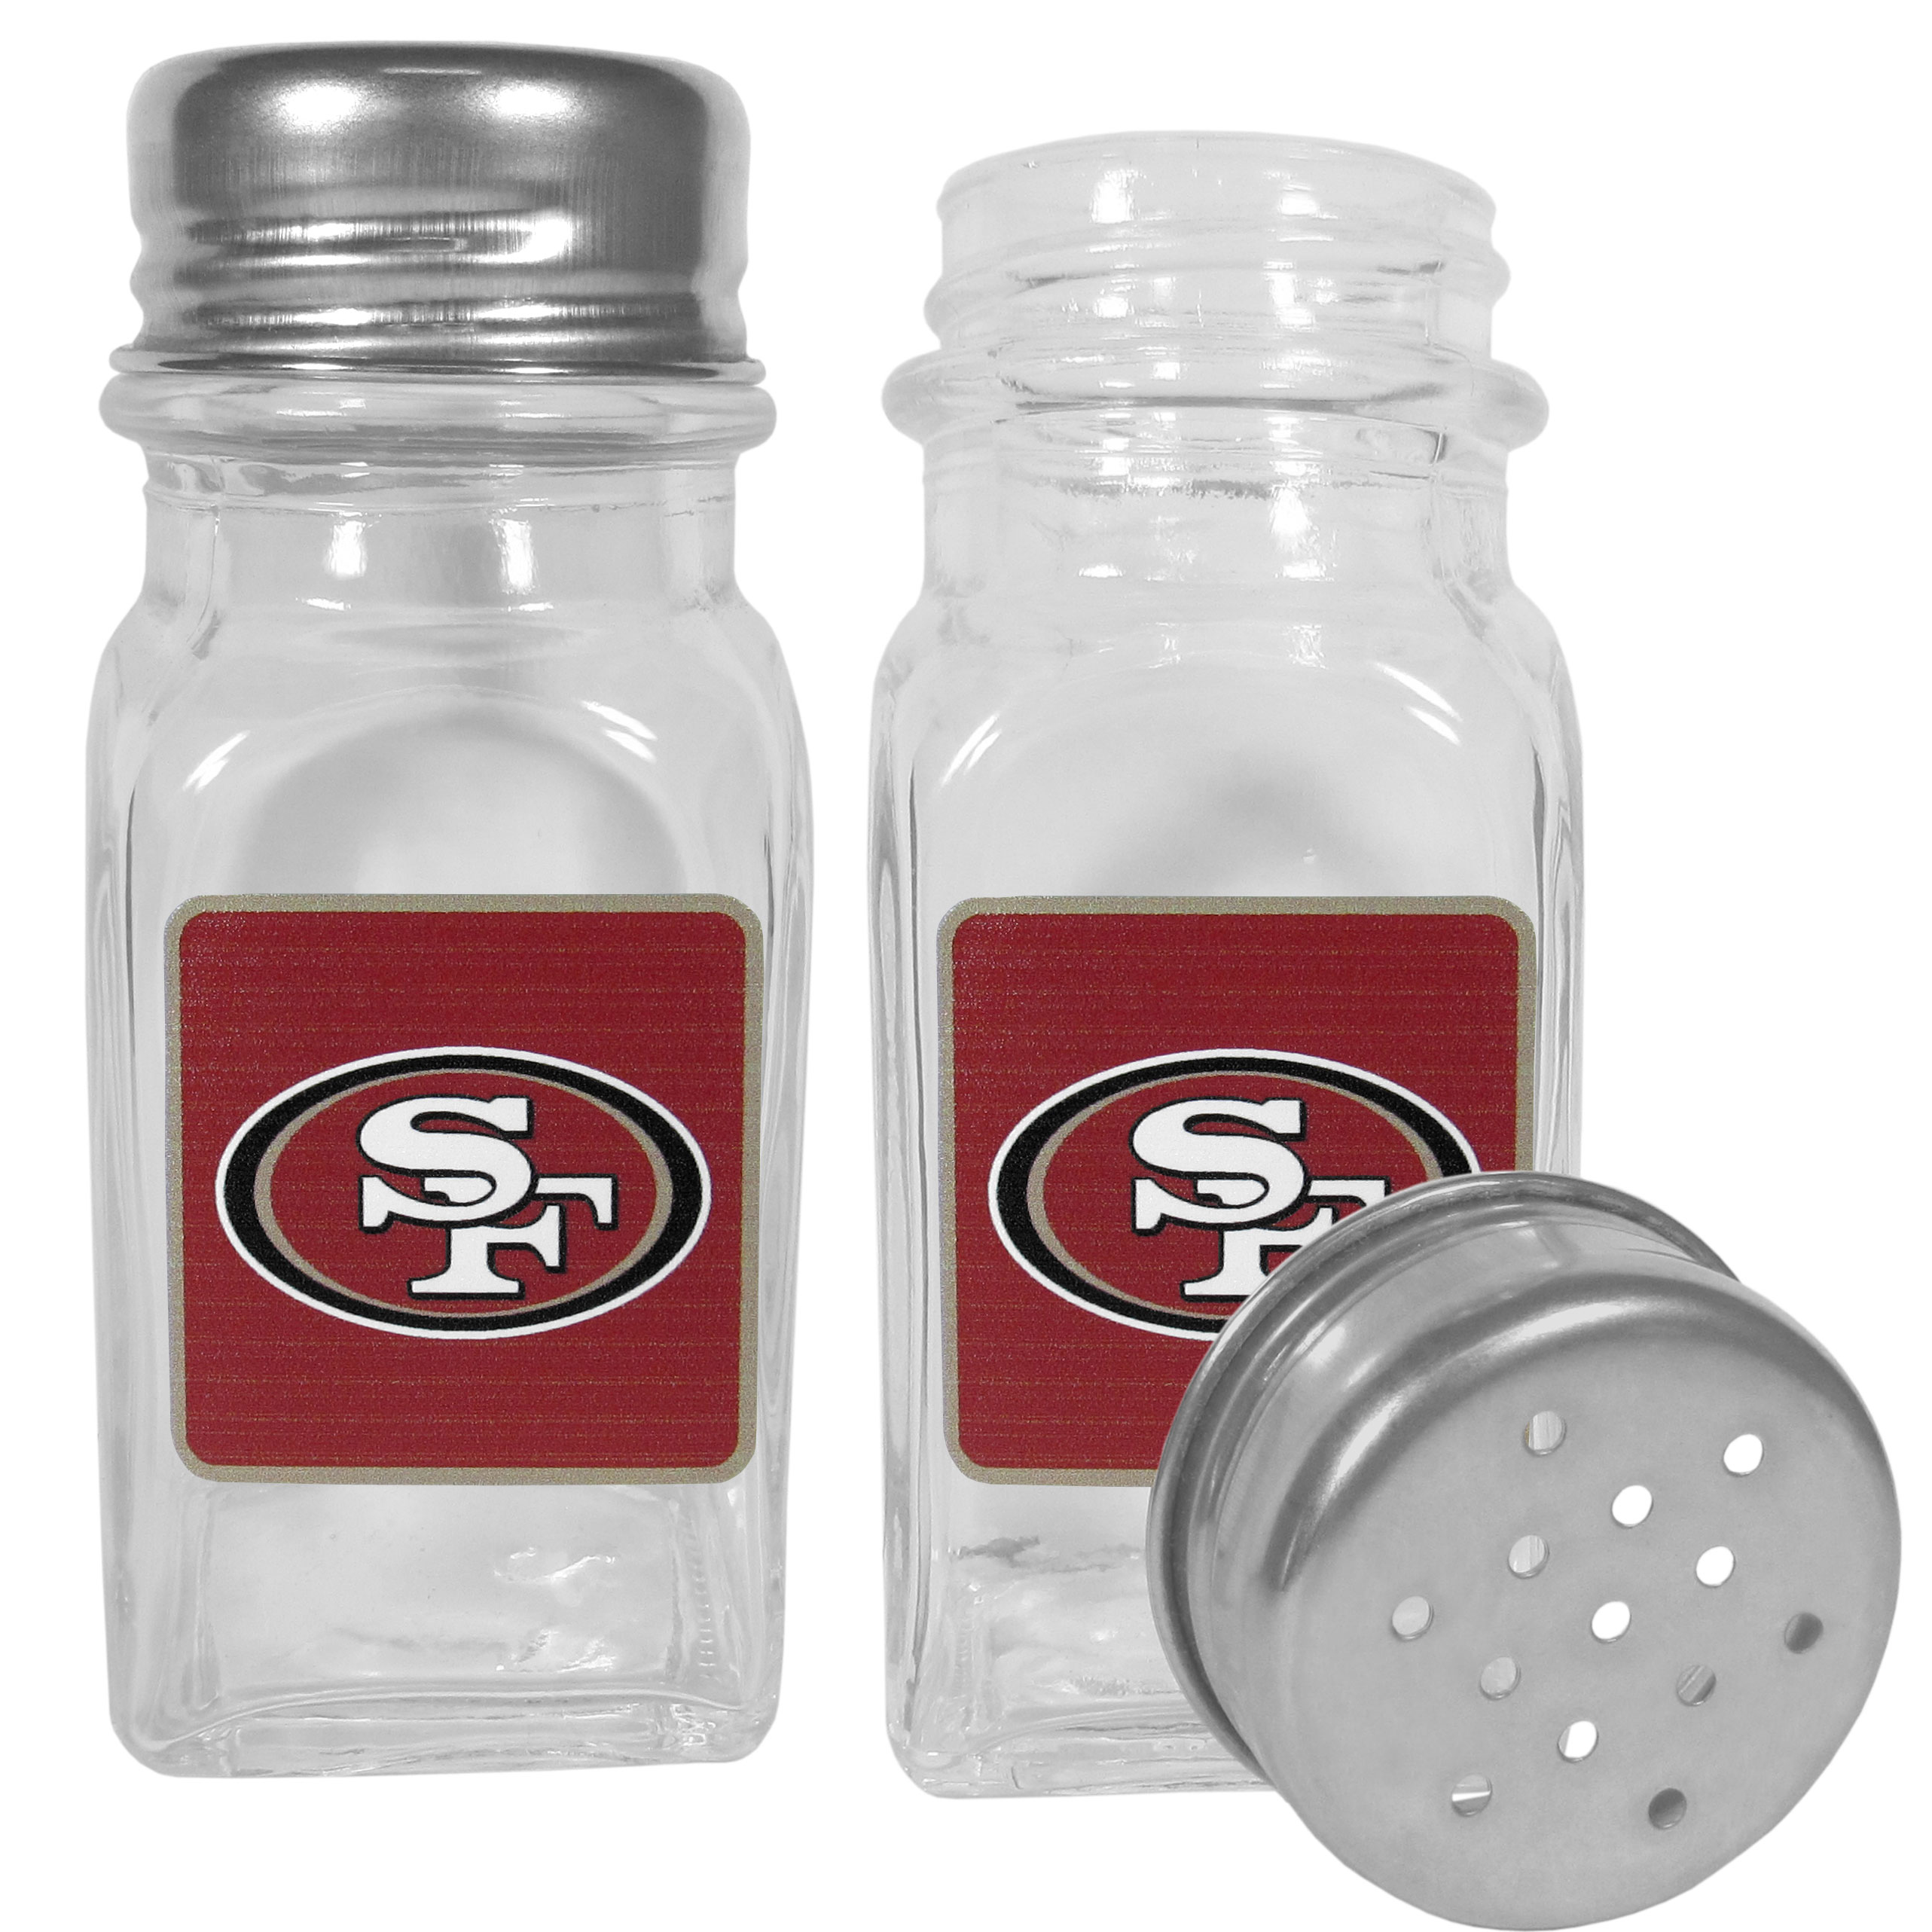 San Francisco 49ers Graphics Salt and Pepper Shaker - No tailgate party is complete without your San Francisco 49ers salt & pepper shakers featuring bright team logos. The diner replica salt and pepper shakers are glass with screw top lids. These team shakers are a great grill accessory whether you are barbecuing on the patio, picnicing or having a game day party.